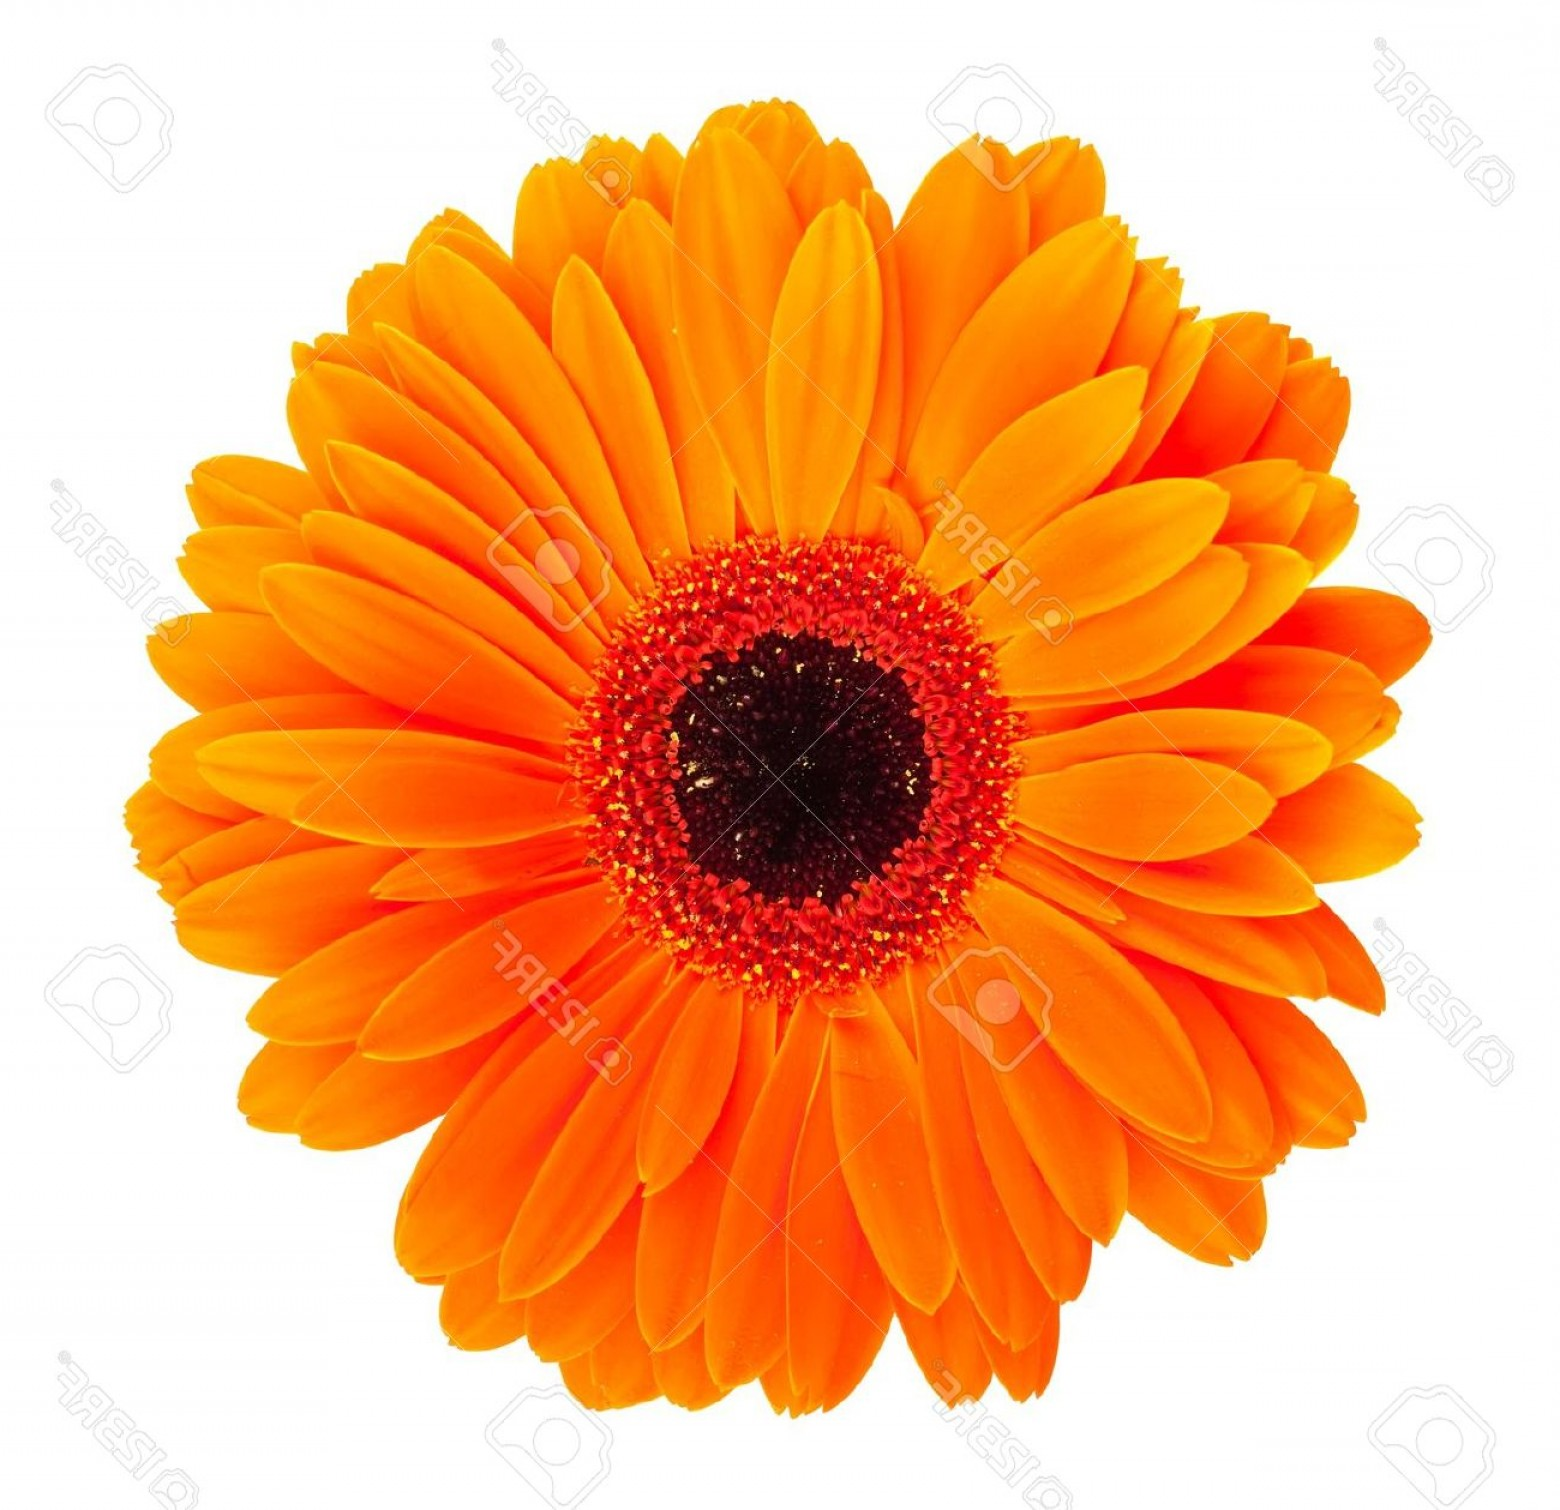 Orange Gerber Daisy Vector: Lovely Photosingle Orange Gerbera Flower Isolated On White Background